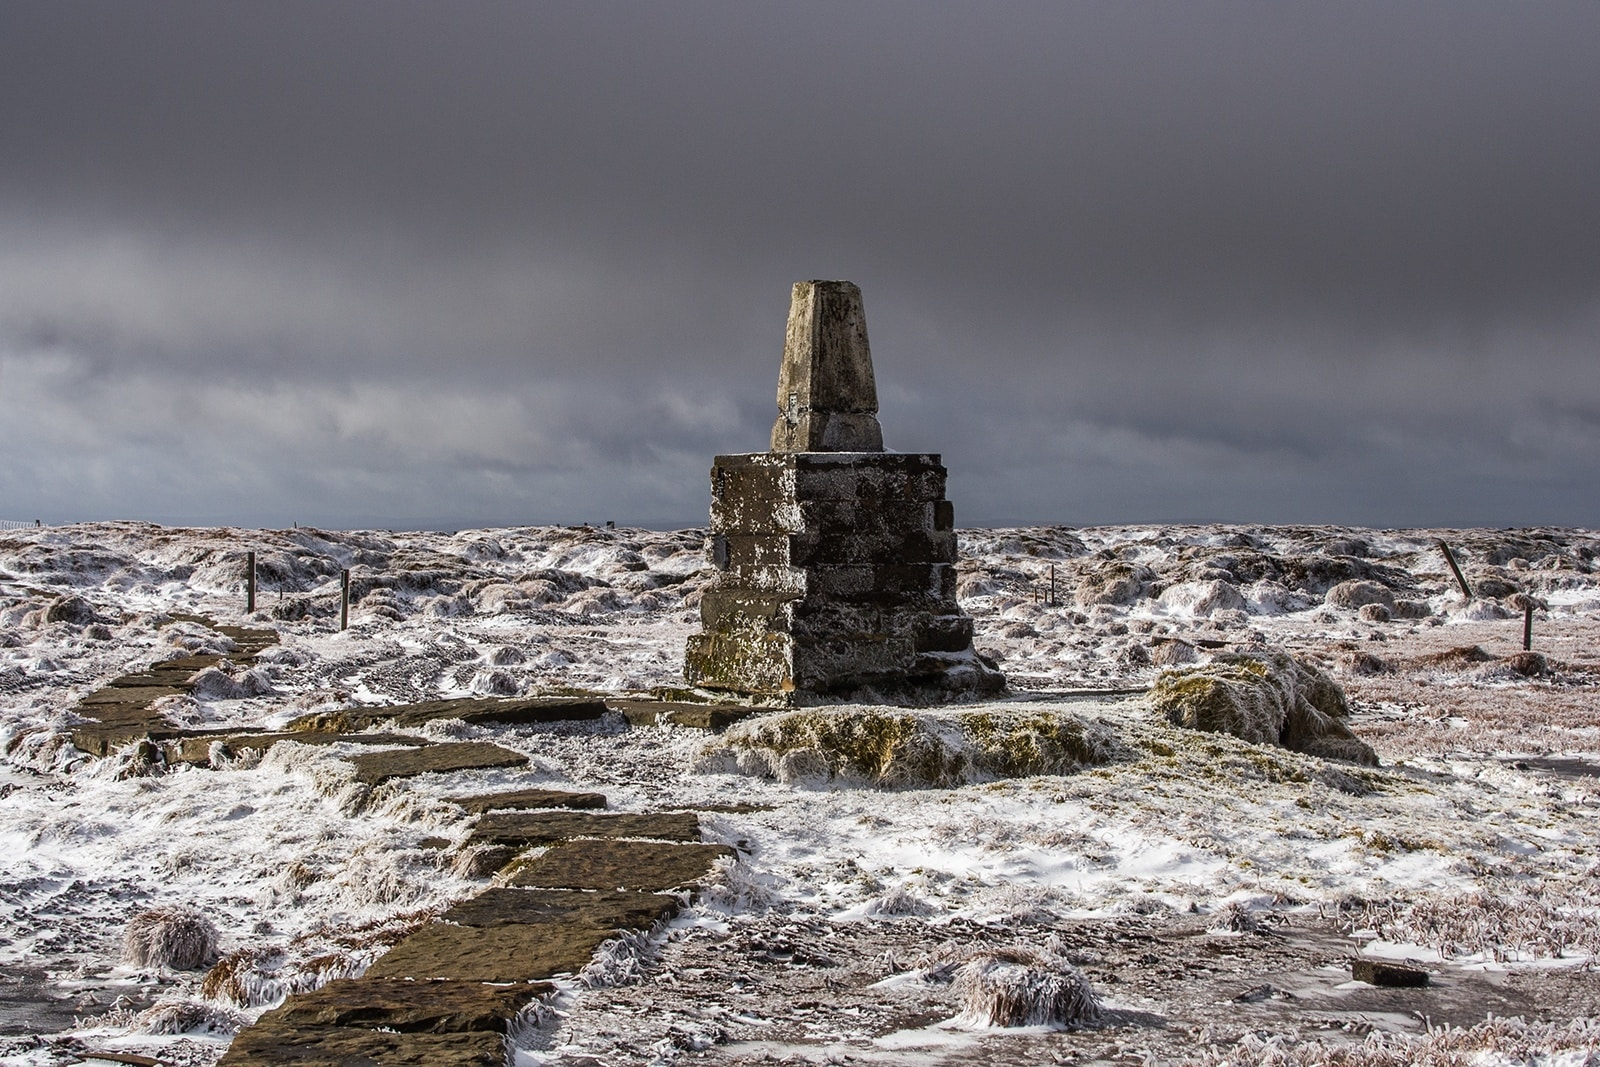 The trig point on the summit of The Cheviot